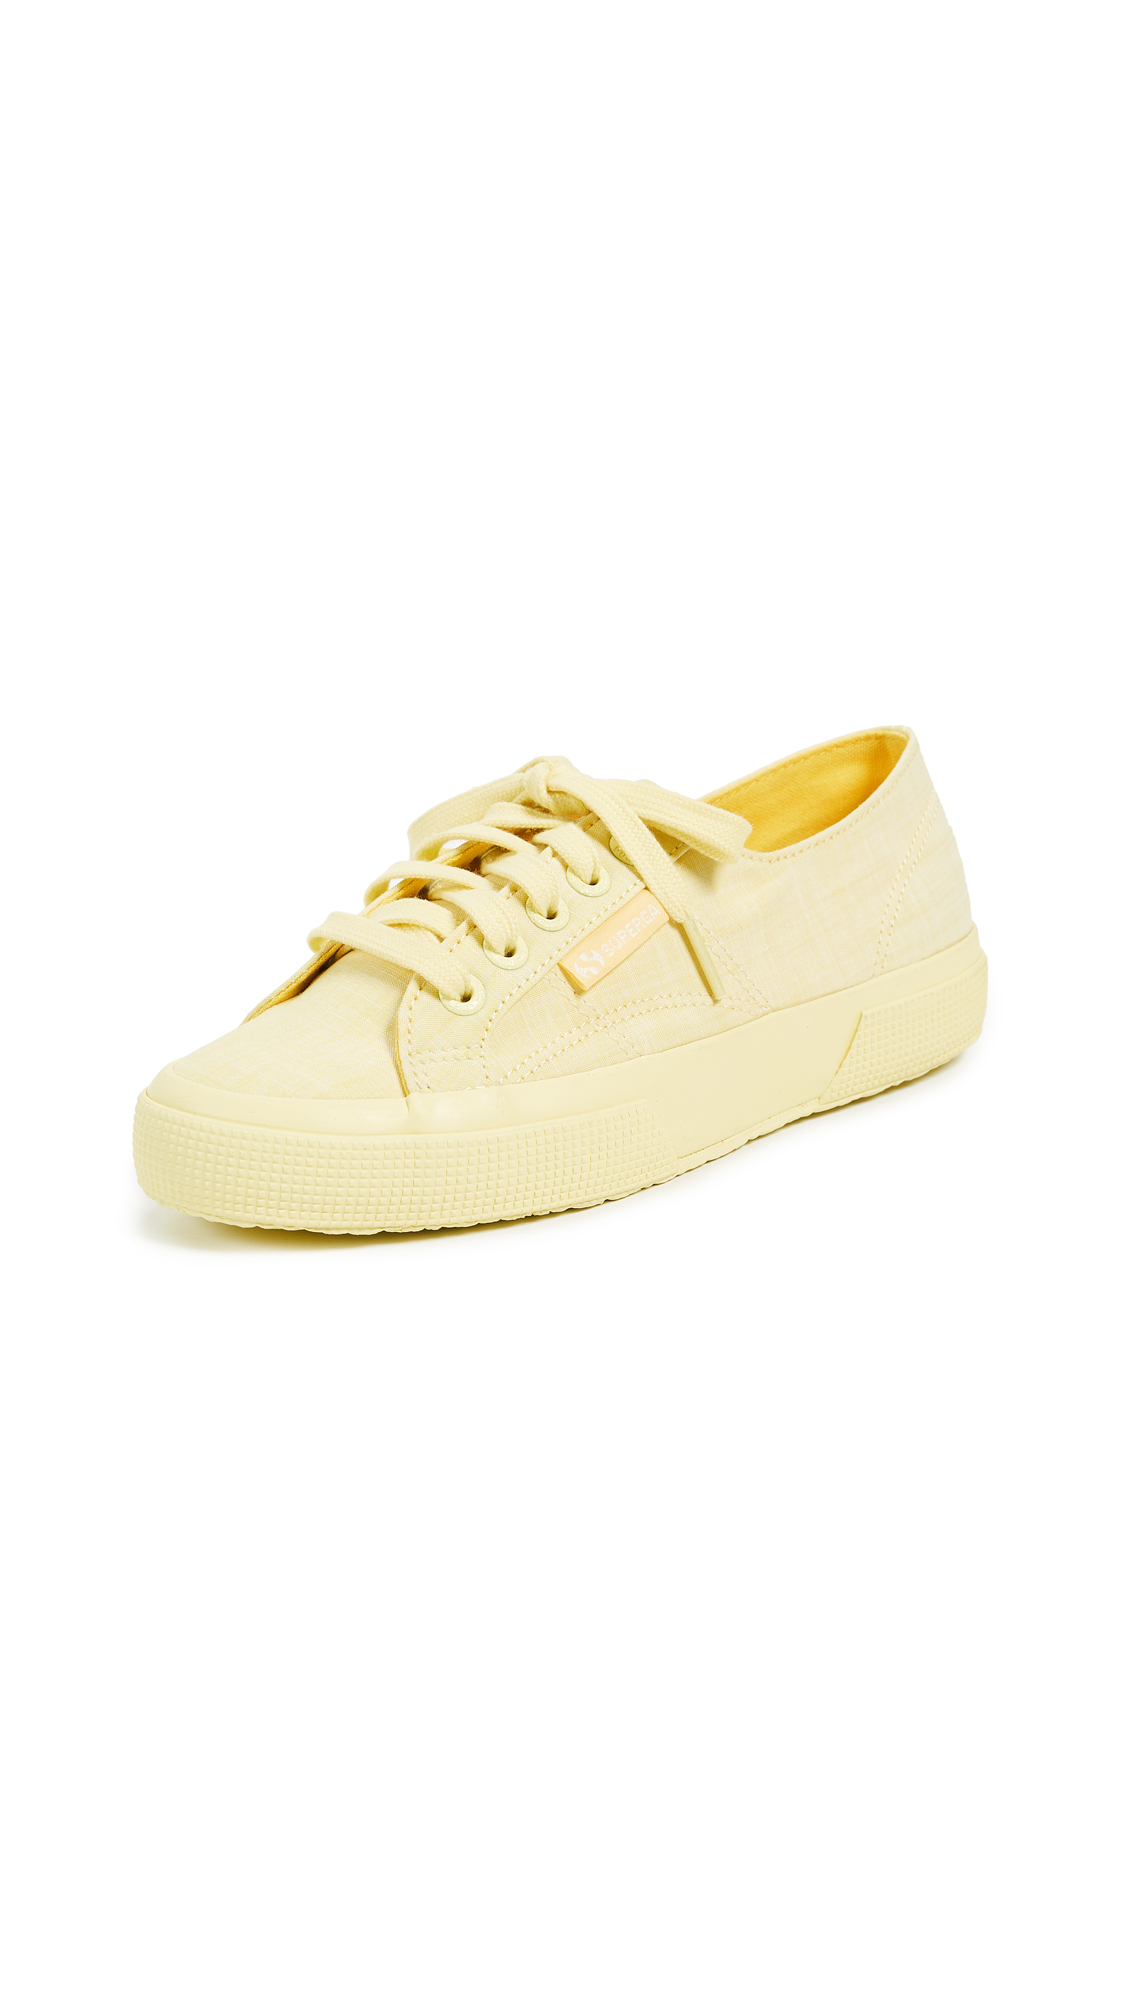 Superga 2750 Cotton Melangu Sneakers - Yellow